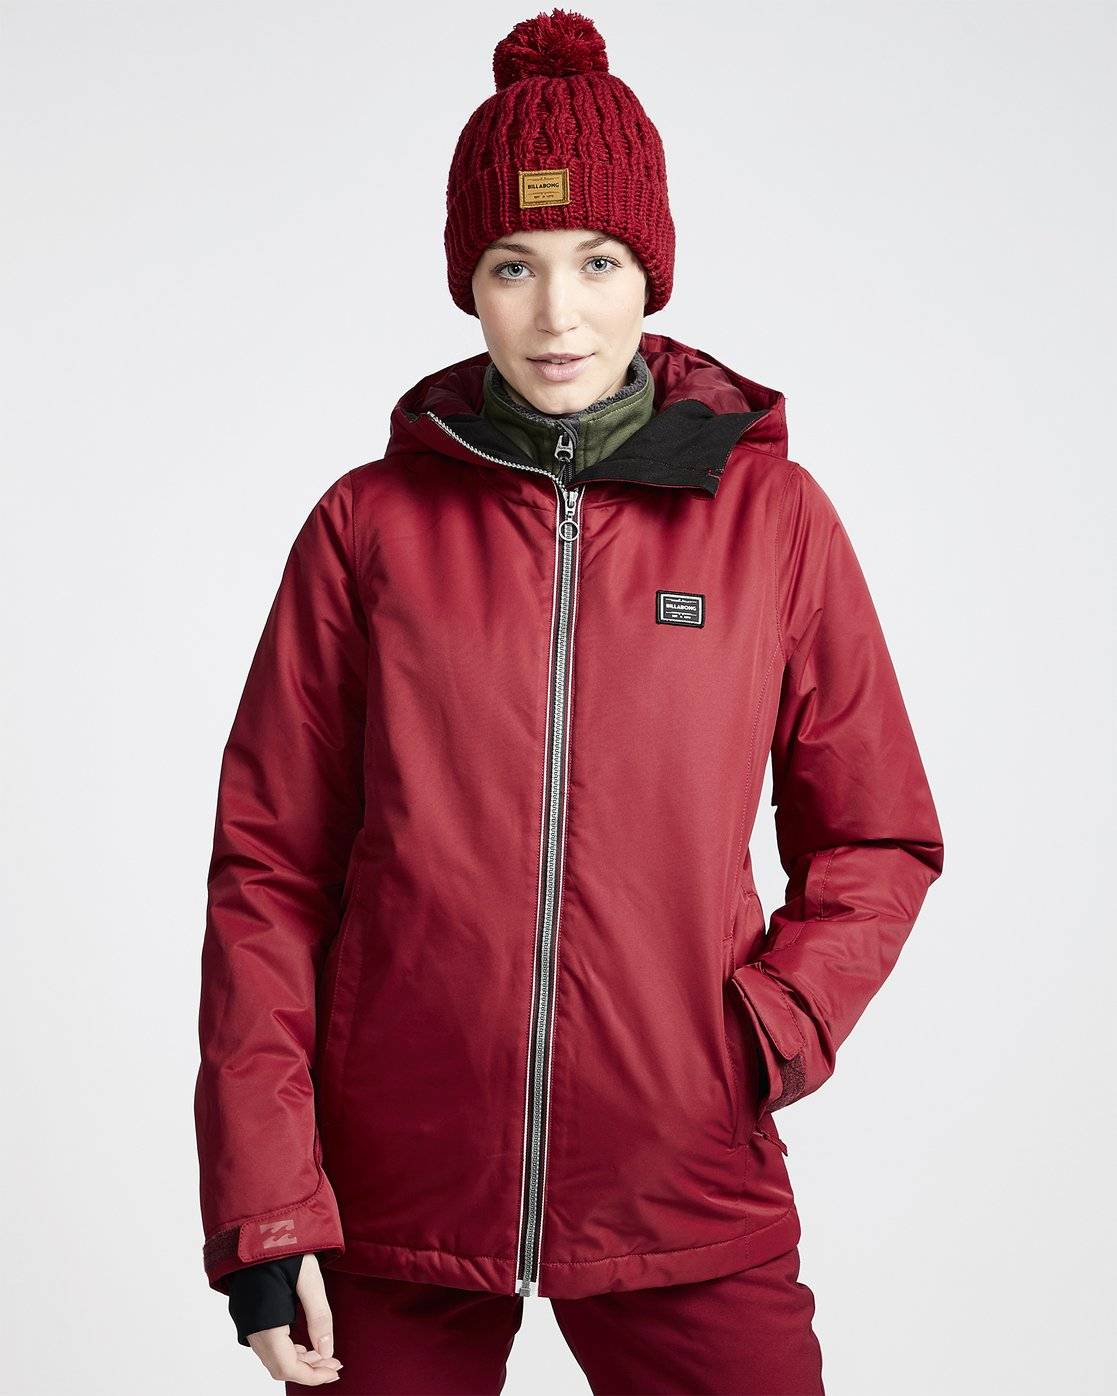 Billabong Women's Sula Snow Jacket  - Red - Size: Extra Small